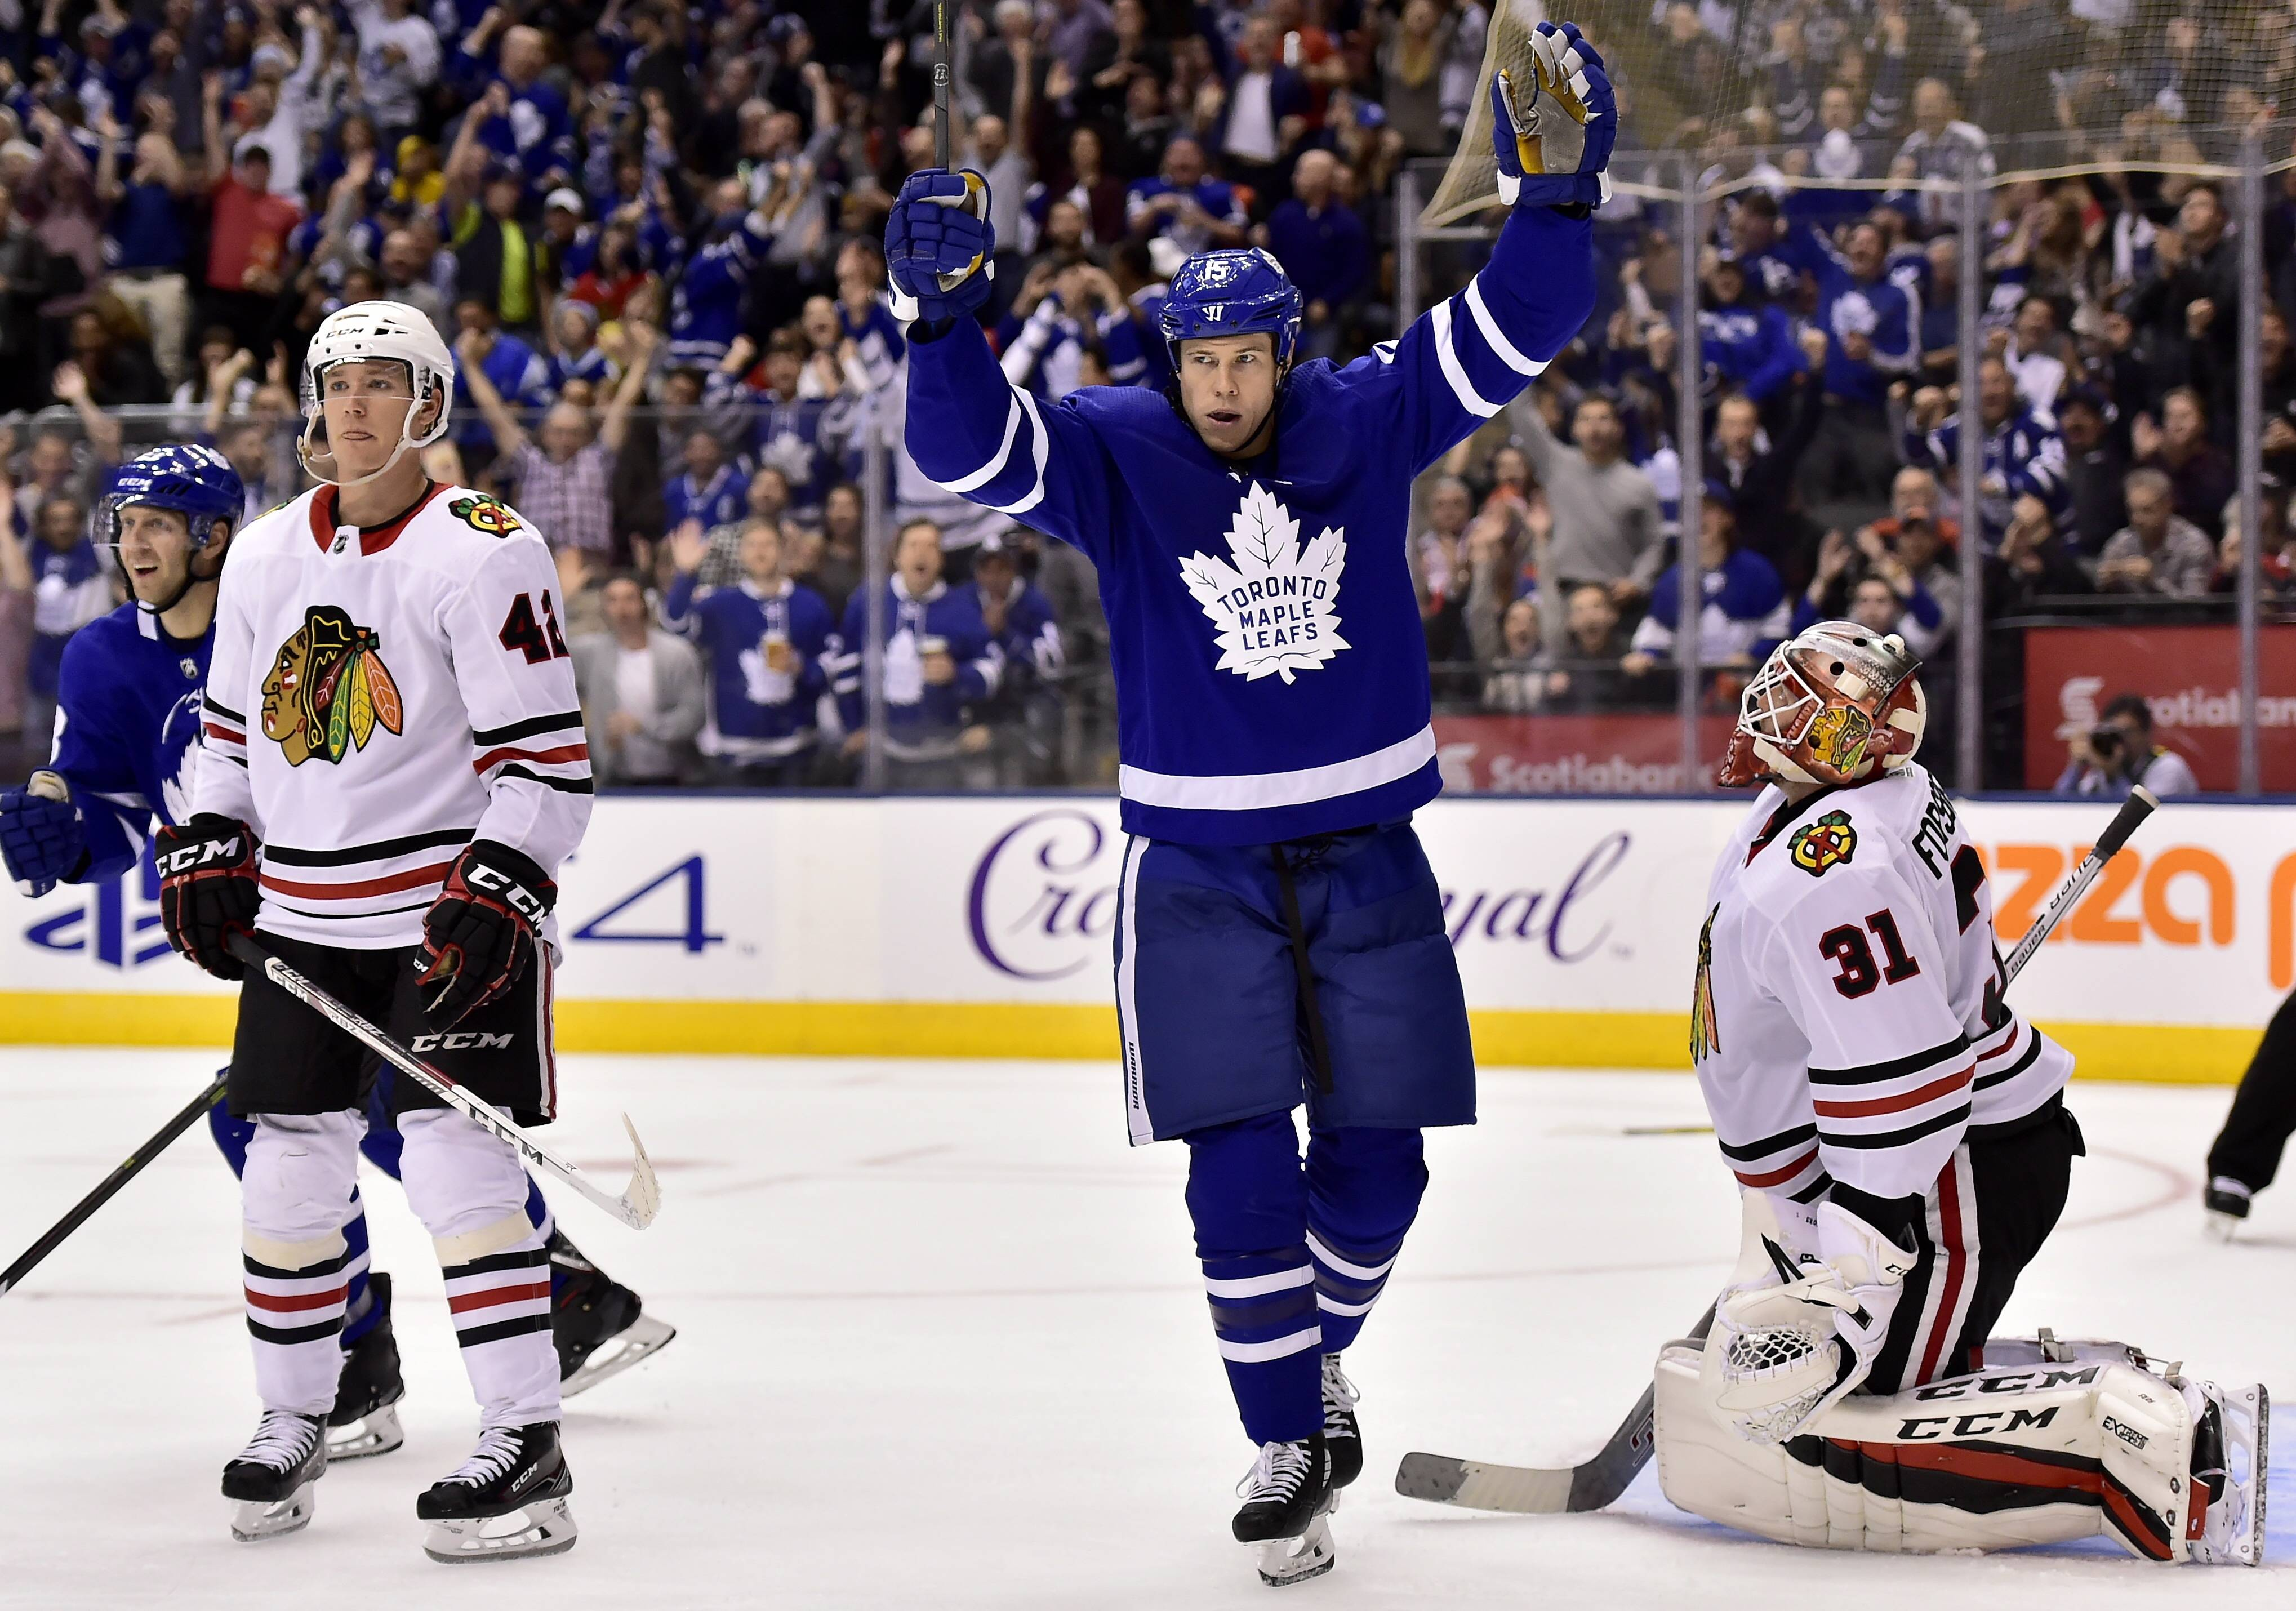 Toronto Maple Leafs left wing Matt Martin (15) celebrates a goal by teammate Nikita Zaitsev (22), not shown, as Chicago Blackhawks goalie Anton Forsberg (31) and teammate Gustav Forsling (42) look on during the second period of an NHL hockey game in Toronto on Monday, Oct. 9, 2017.